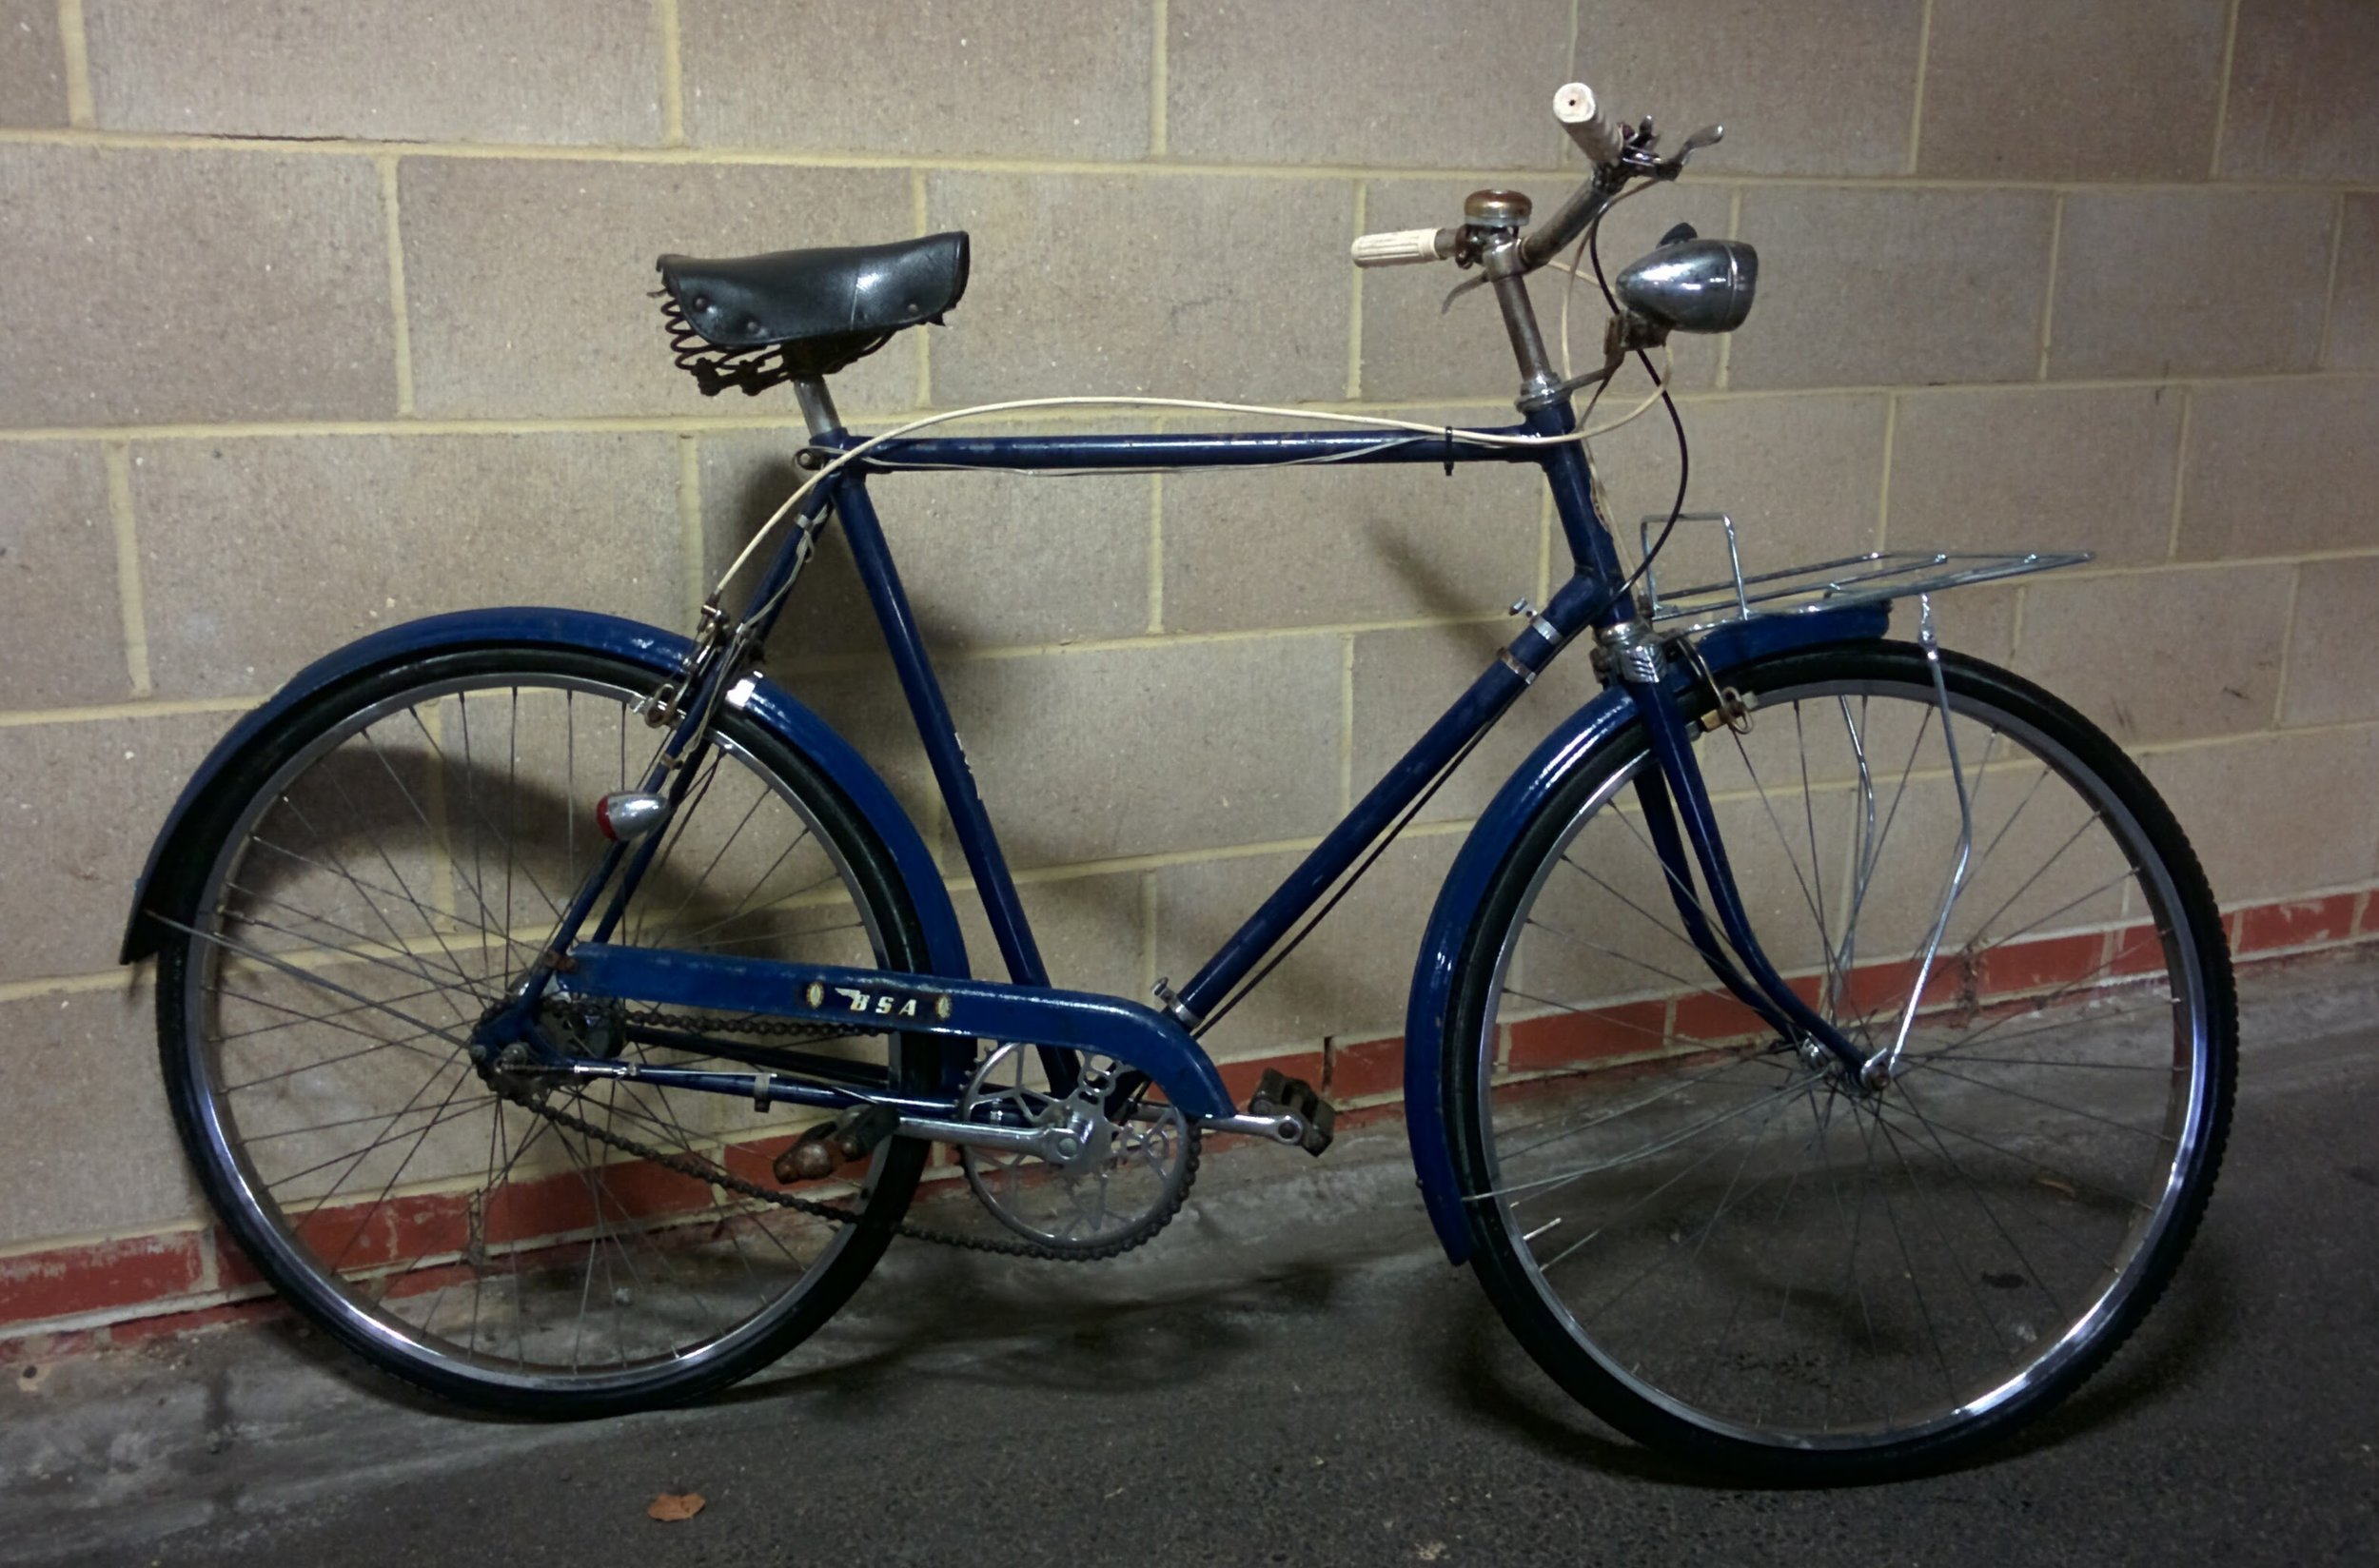 1967 Birmingham Small Arms (BSA) - Sold   Servicing - Sturmey Archer AG Dynohub check and clean   December 2016 / January 2017